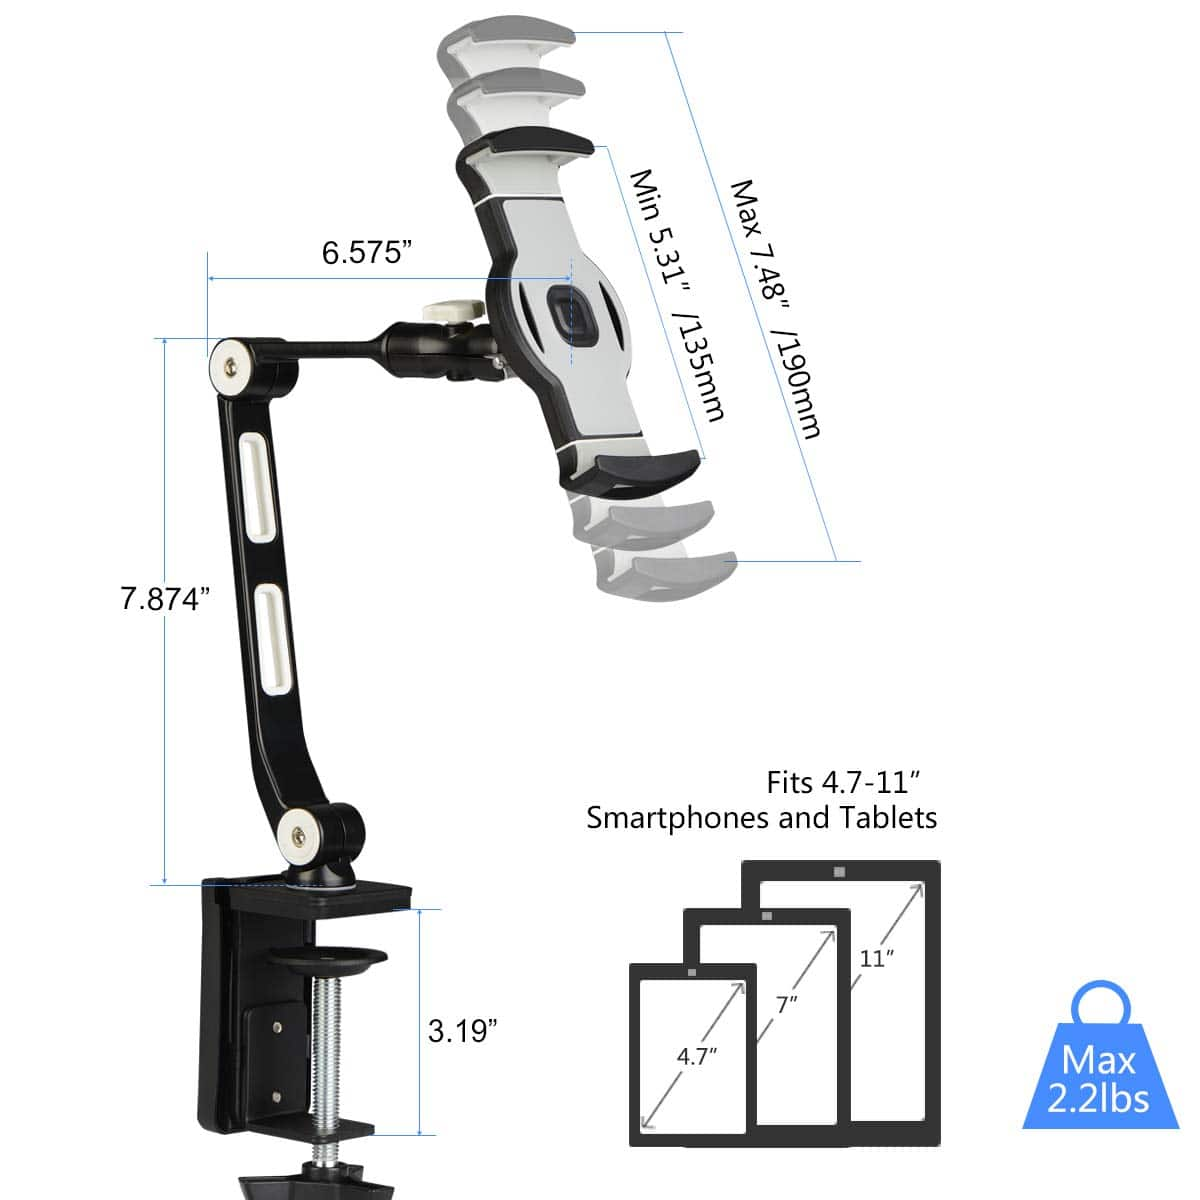 suptek Aluminum Tablet Desk Mount Stand 360° Flexible Cell Phone Holder for iPad, iPhone, Samsung, Asus and More 4.7-11 inch Devices, @ Amazon $19.99 AC